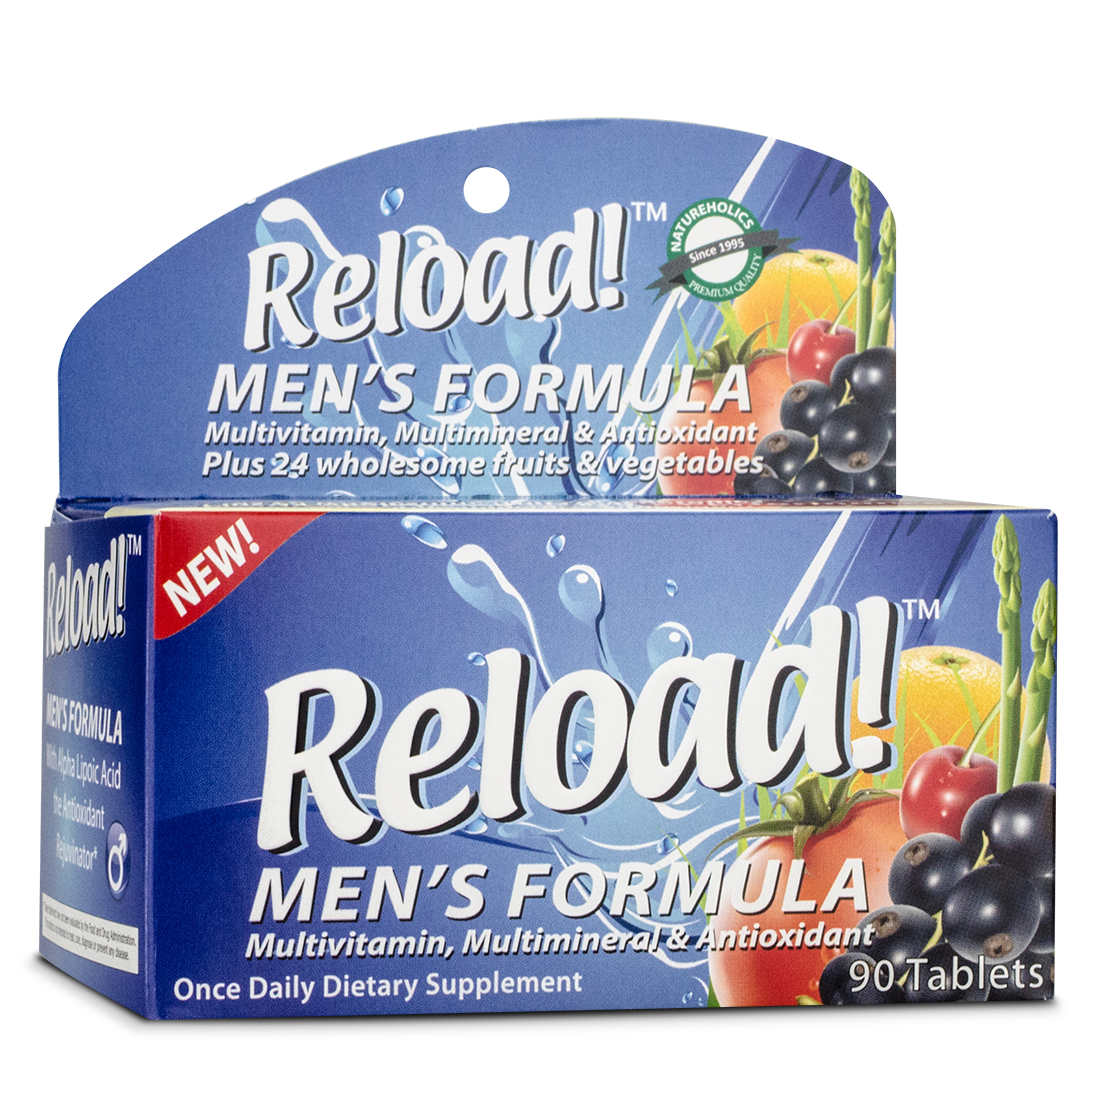 Once-daily supplement for men